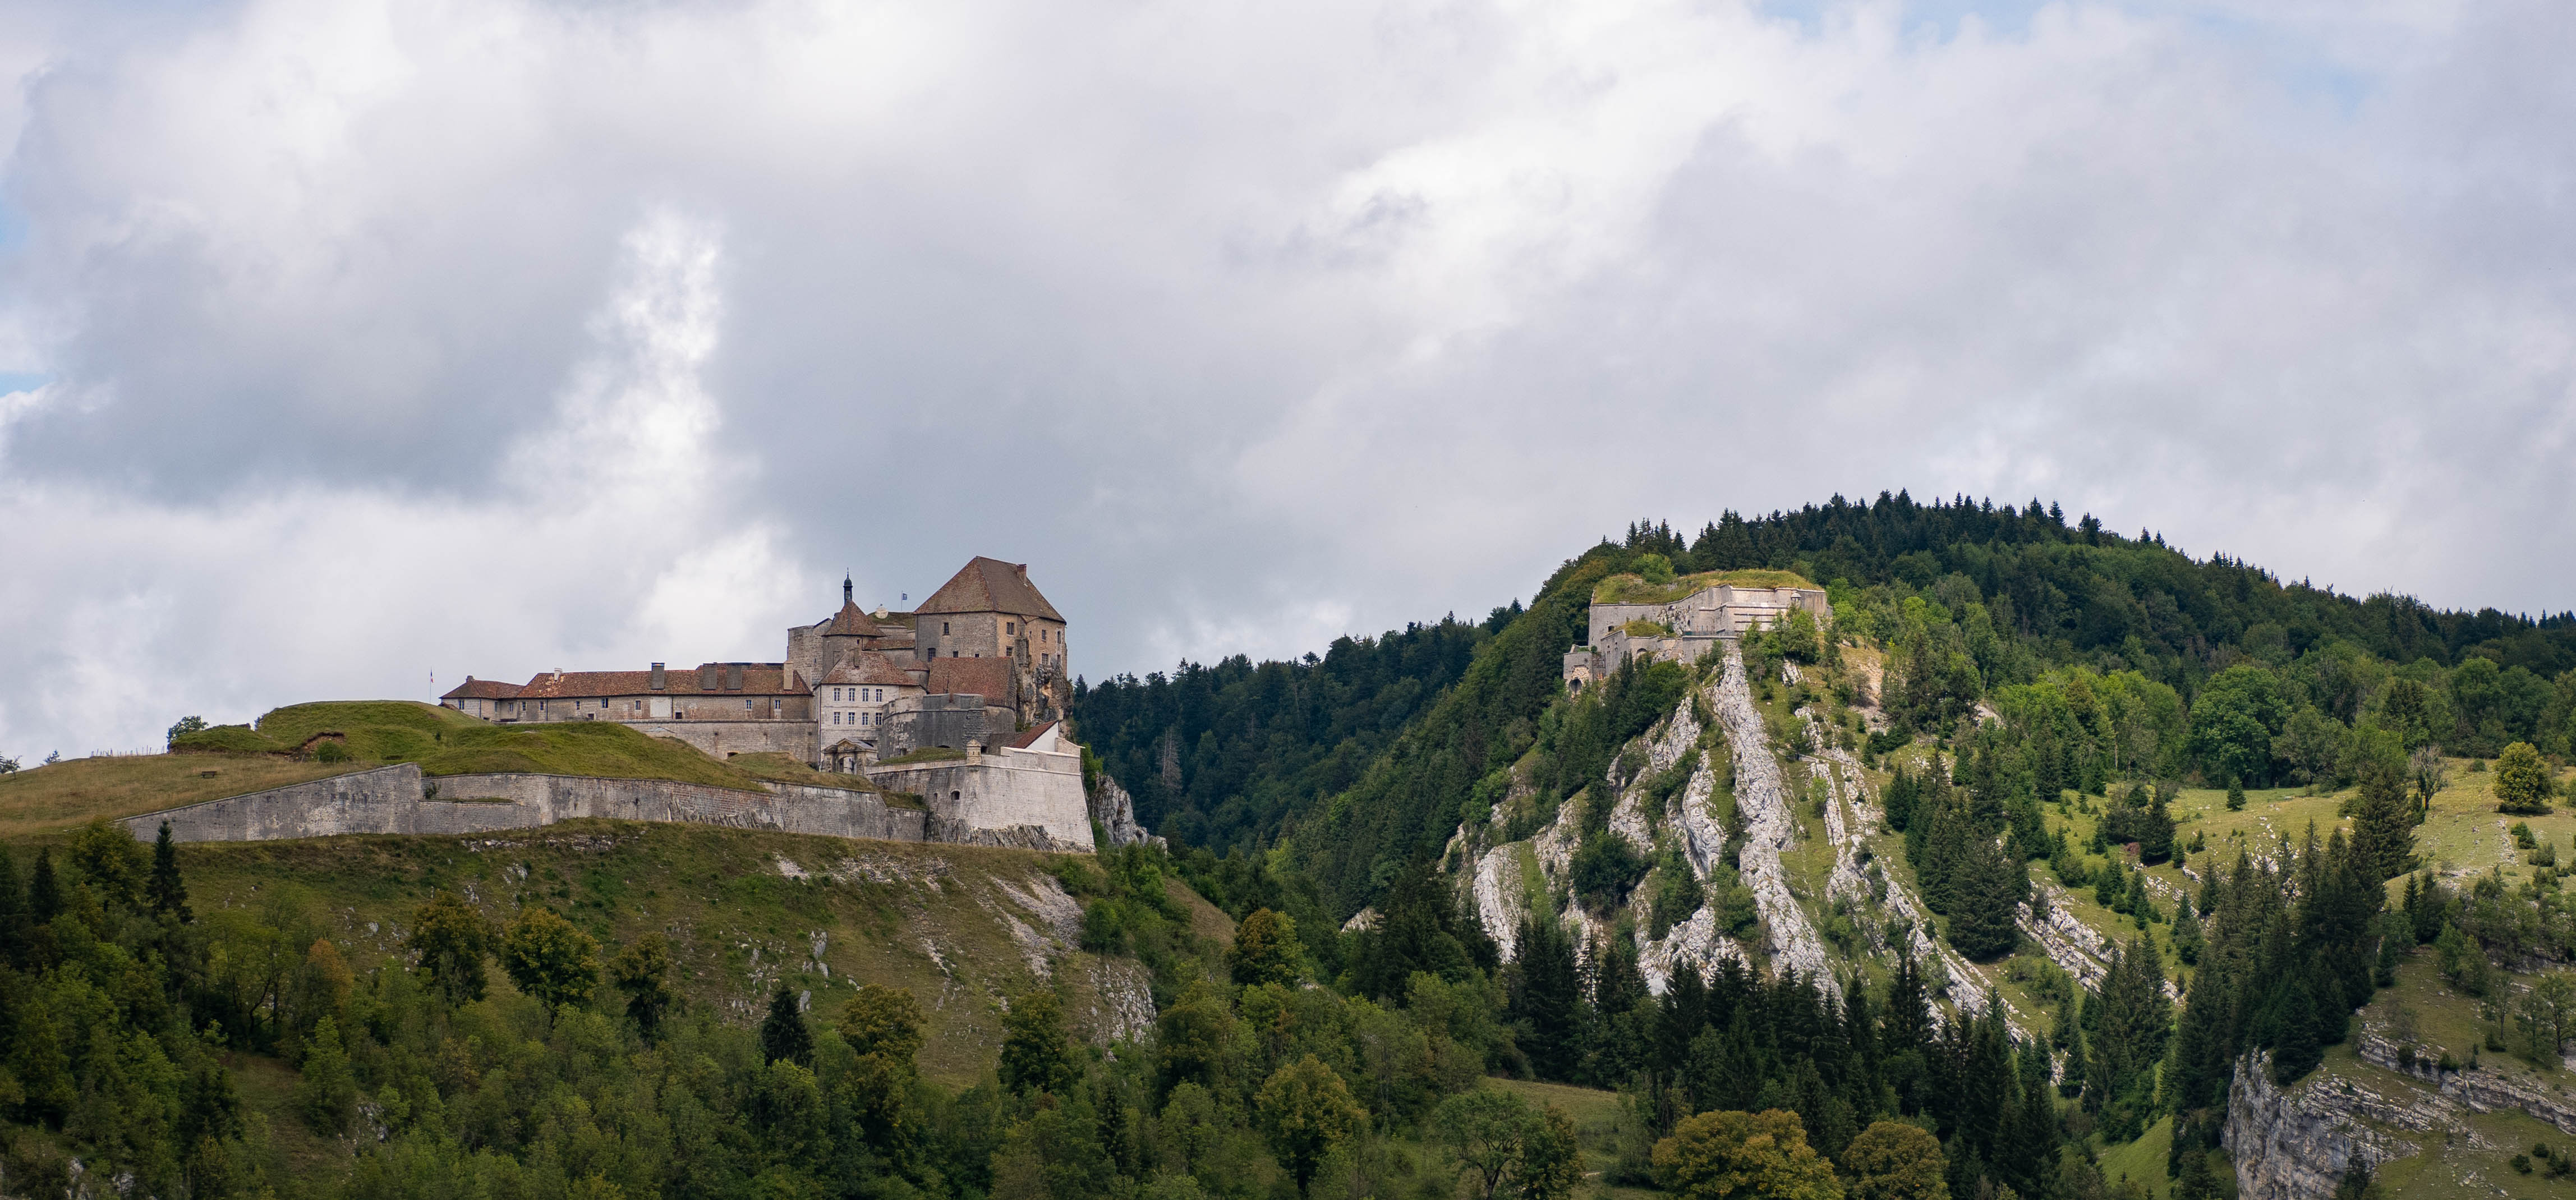 Un Chateau Dans Les Nuages final review of our road trip in central europe - wandering